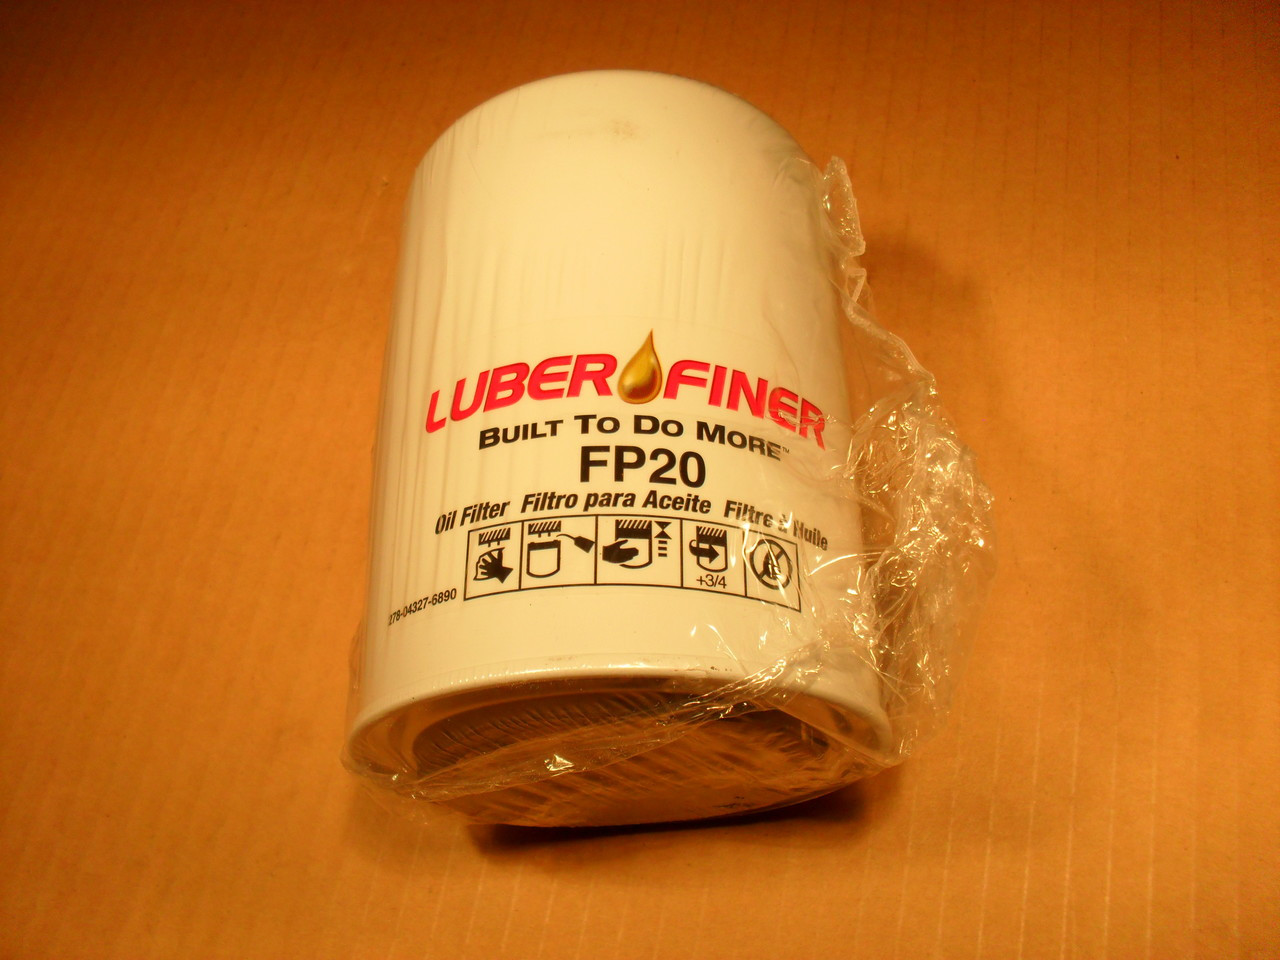 Oil Filter for John Deere 350, 350B, 350C, 350D, 400G, 450, 450B, 450C,  450D, 450E, 450E-LT, 450G, 550, 550A, 550B, 550C, 550G, 650G, 750, 750B and